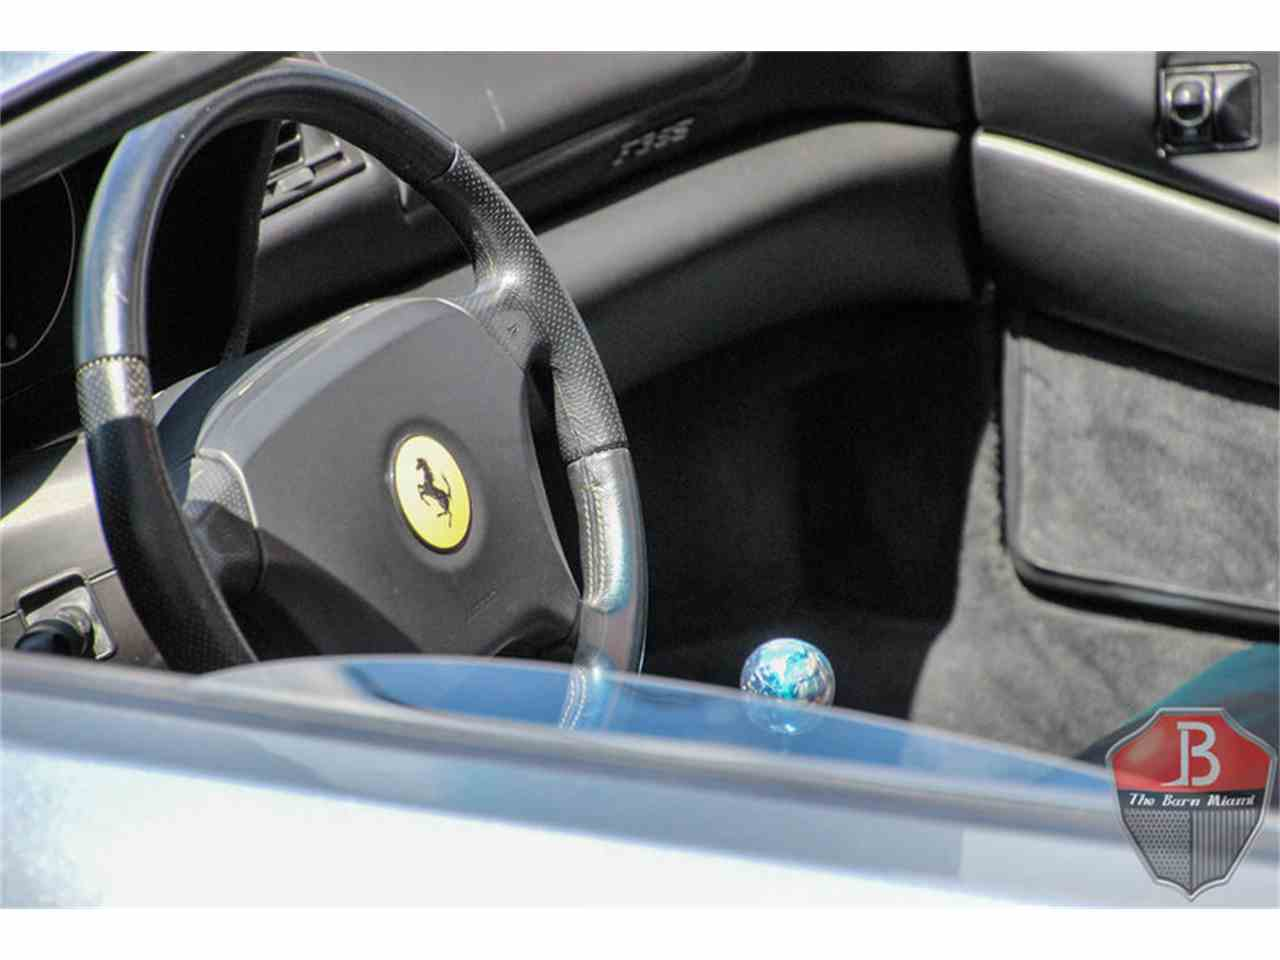 Large Picture of 1997 Ferrari 355 - $74,900.00 Offered by The Barn Miami - IZWQ